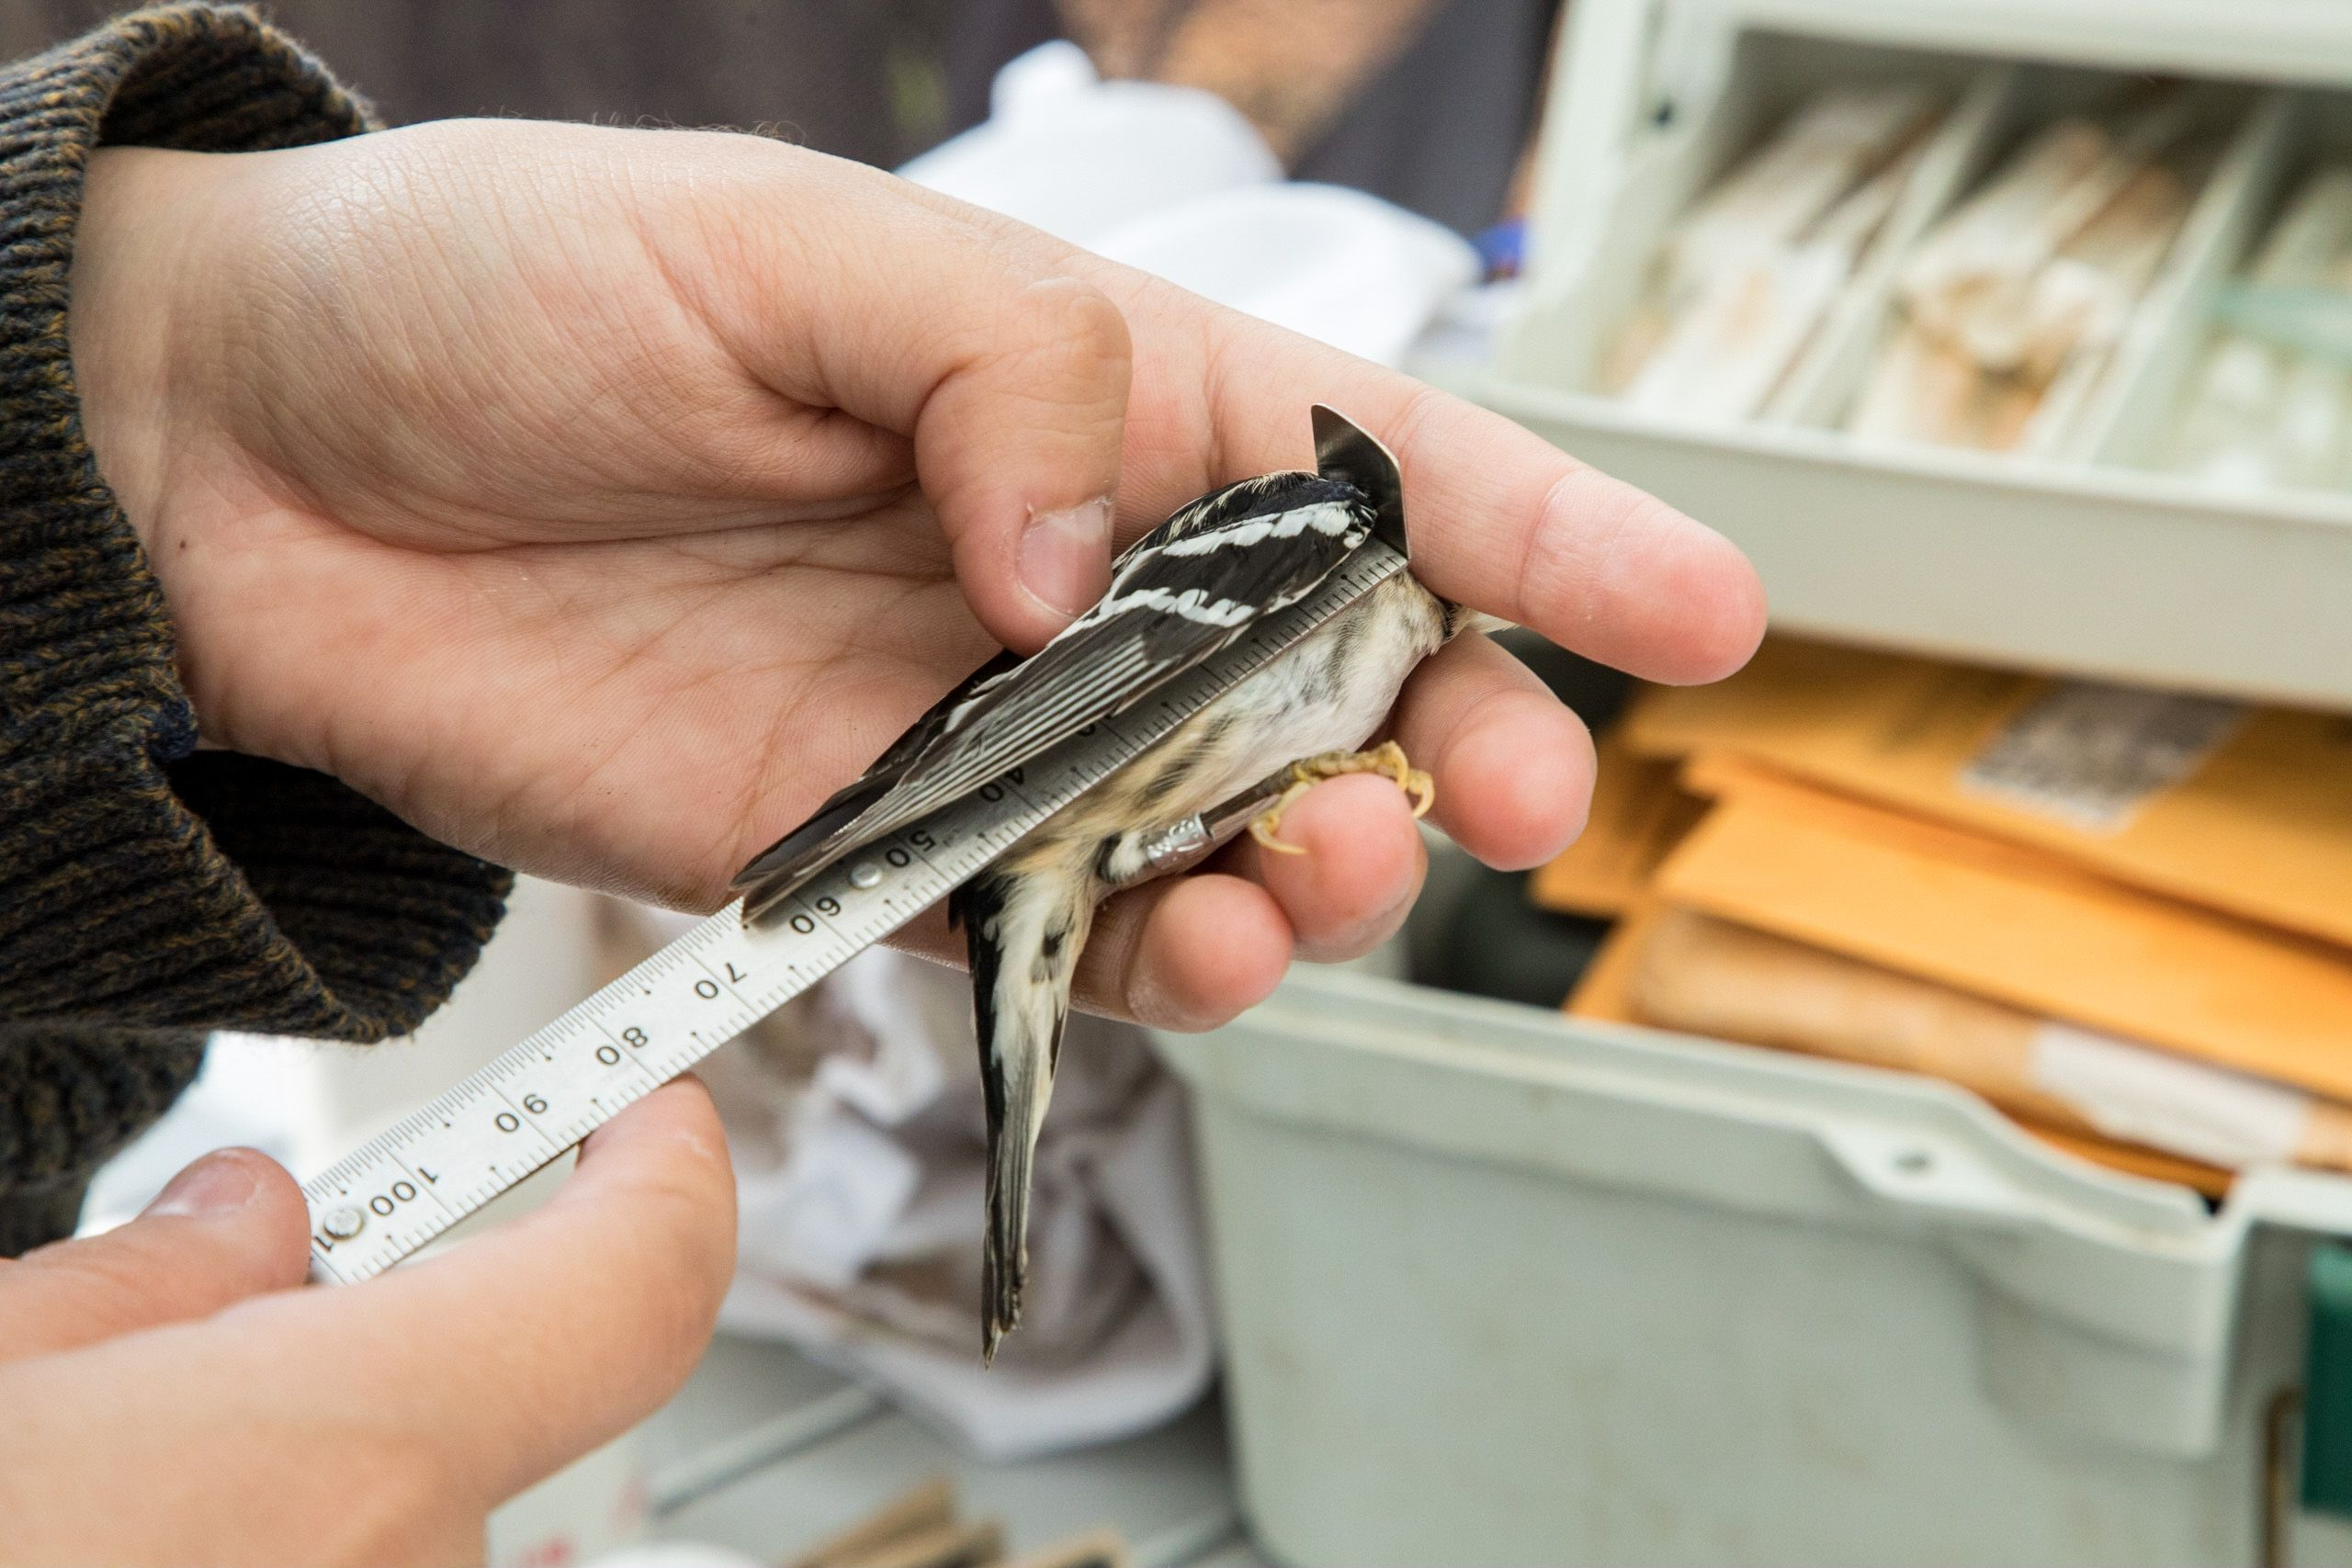 A person holds a ruler against a small black and white bird, taking its measurements.